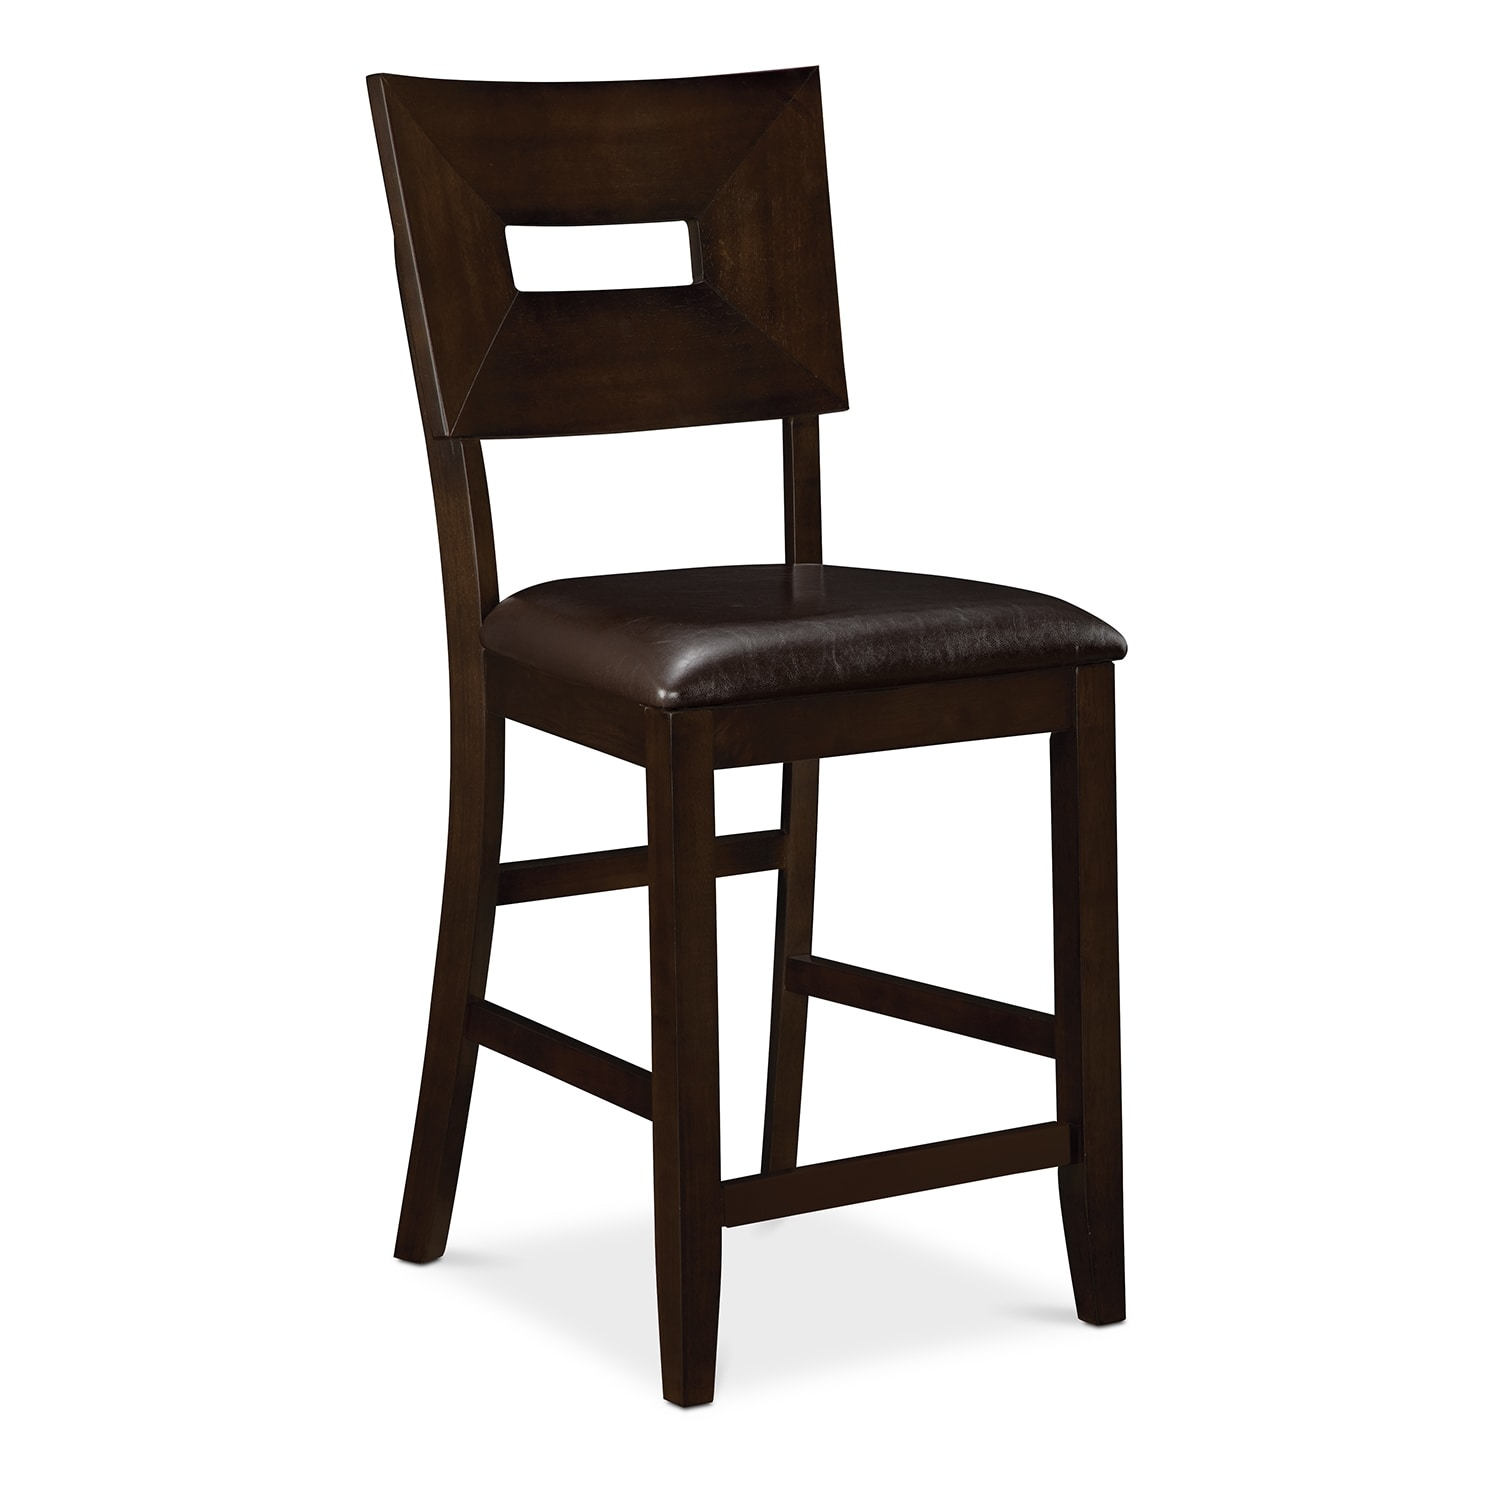 Dining Room Furniture - Cyprus II Counter-Height Stool